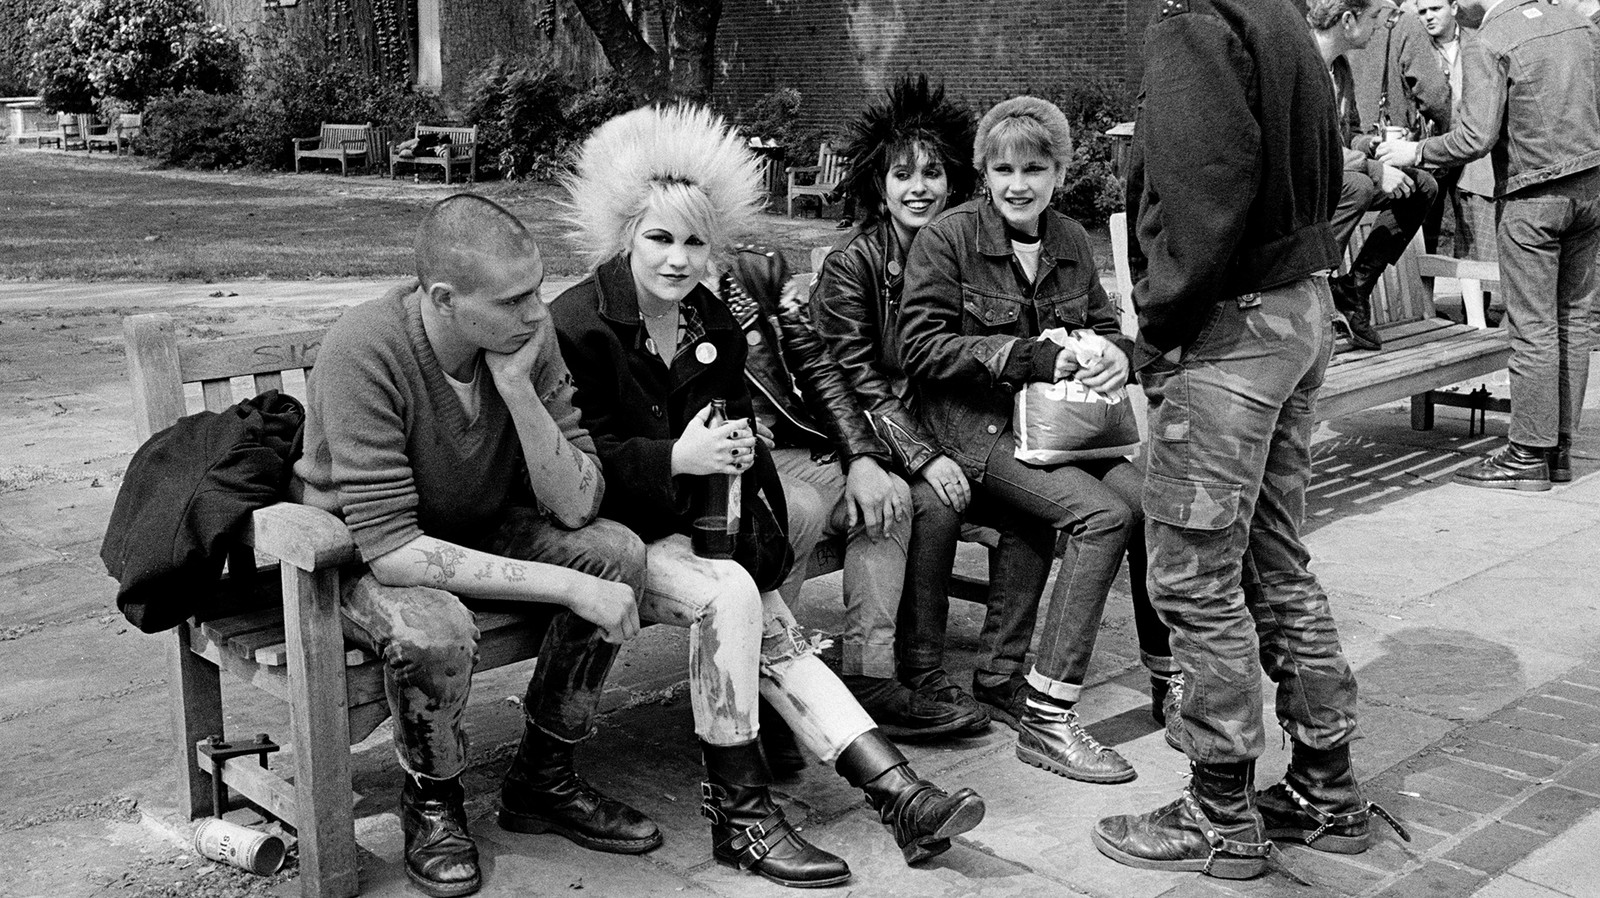 Never-Before-Seen Images of London's Punk Scene